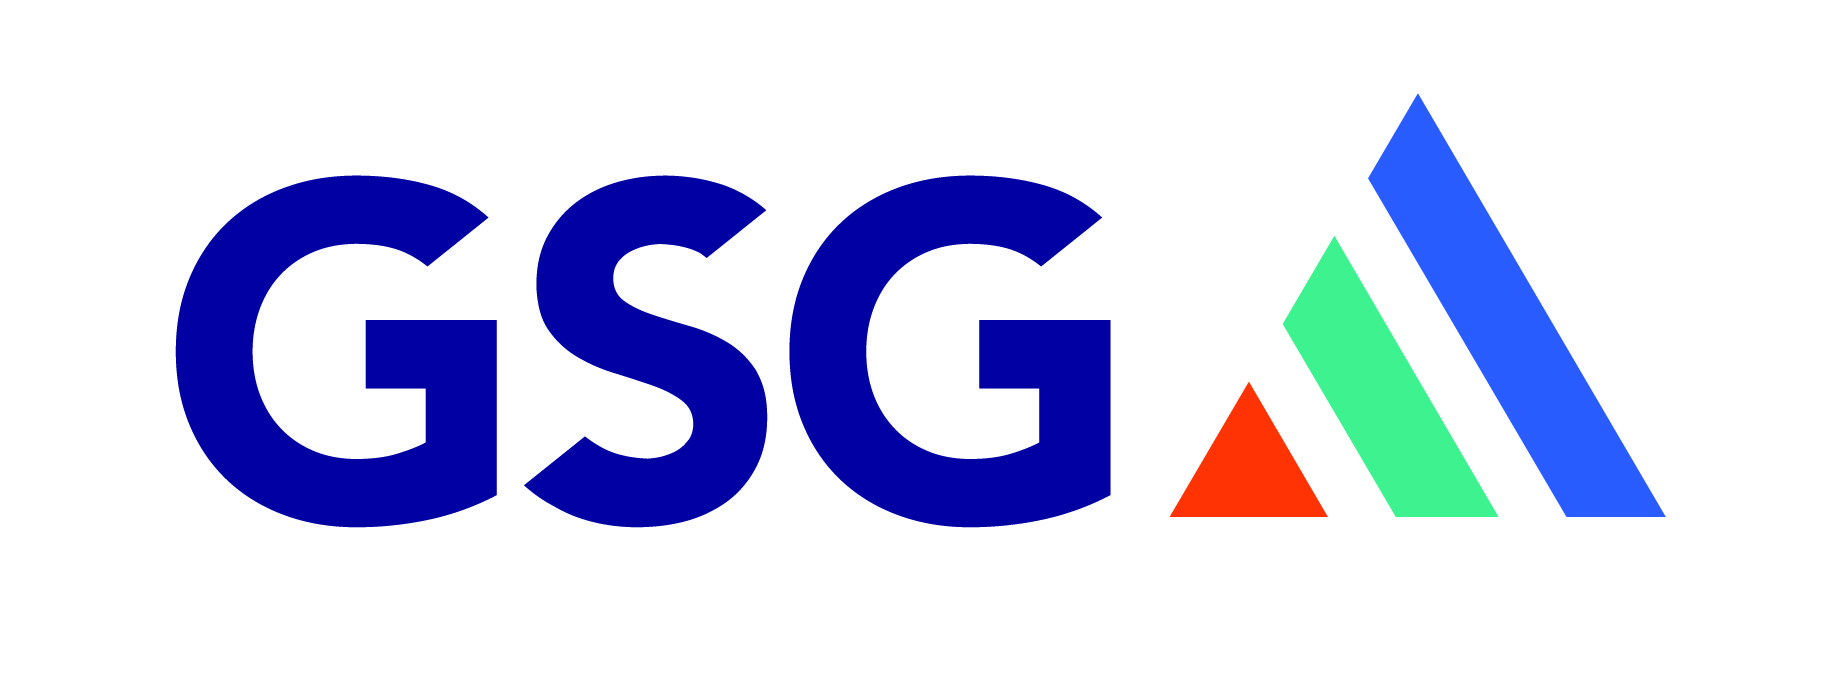 GSG - The Global Steering Group for Impact Investment